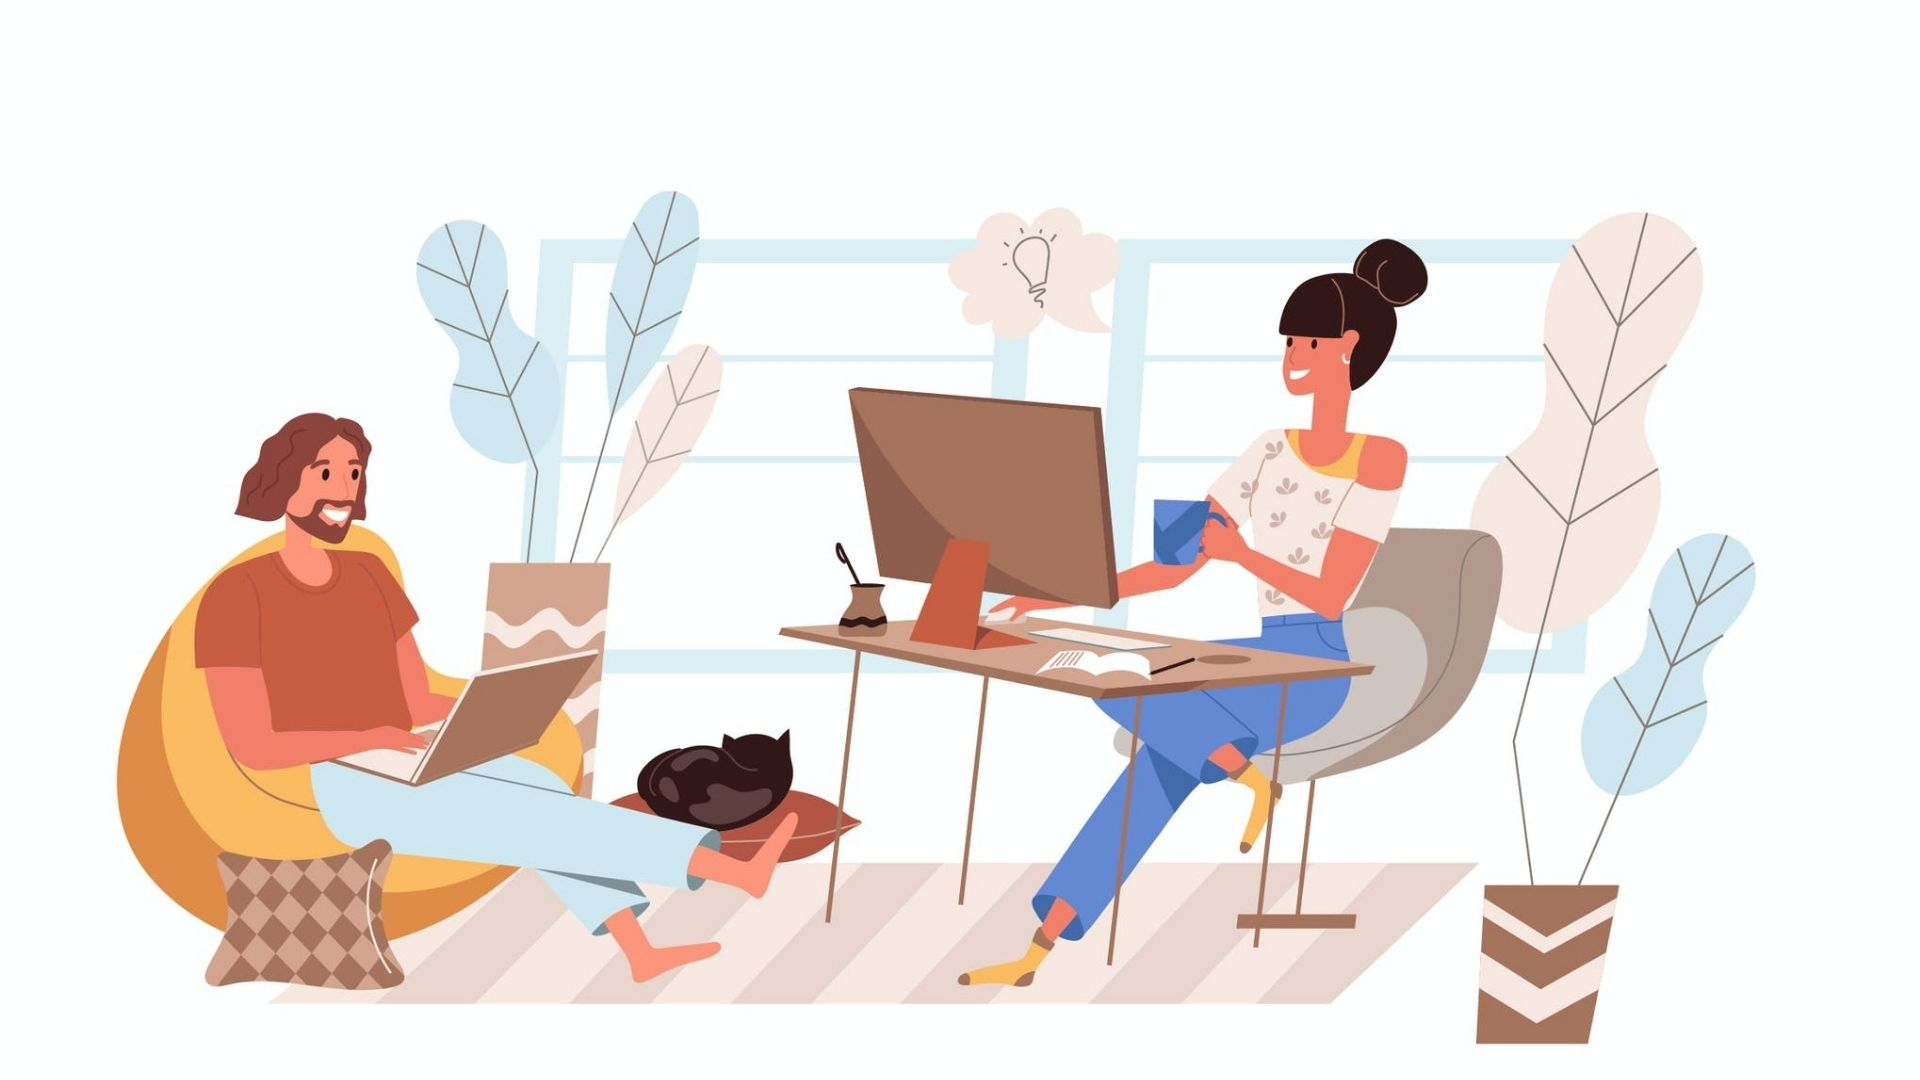 Family, Savings, Mental Health: Why Indians Are Choosing Work-From-Home As A Lifestyle